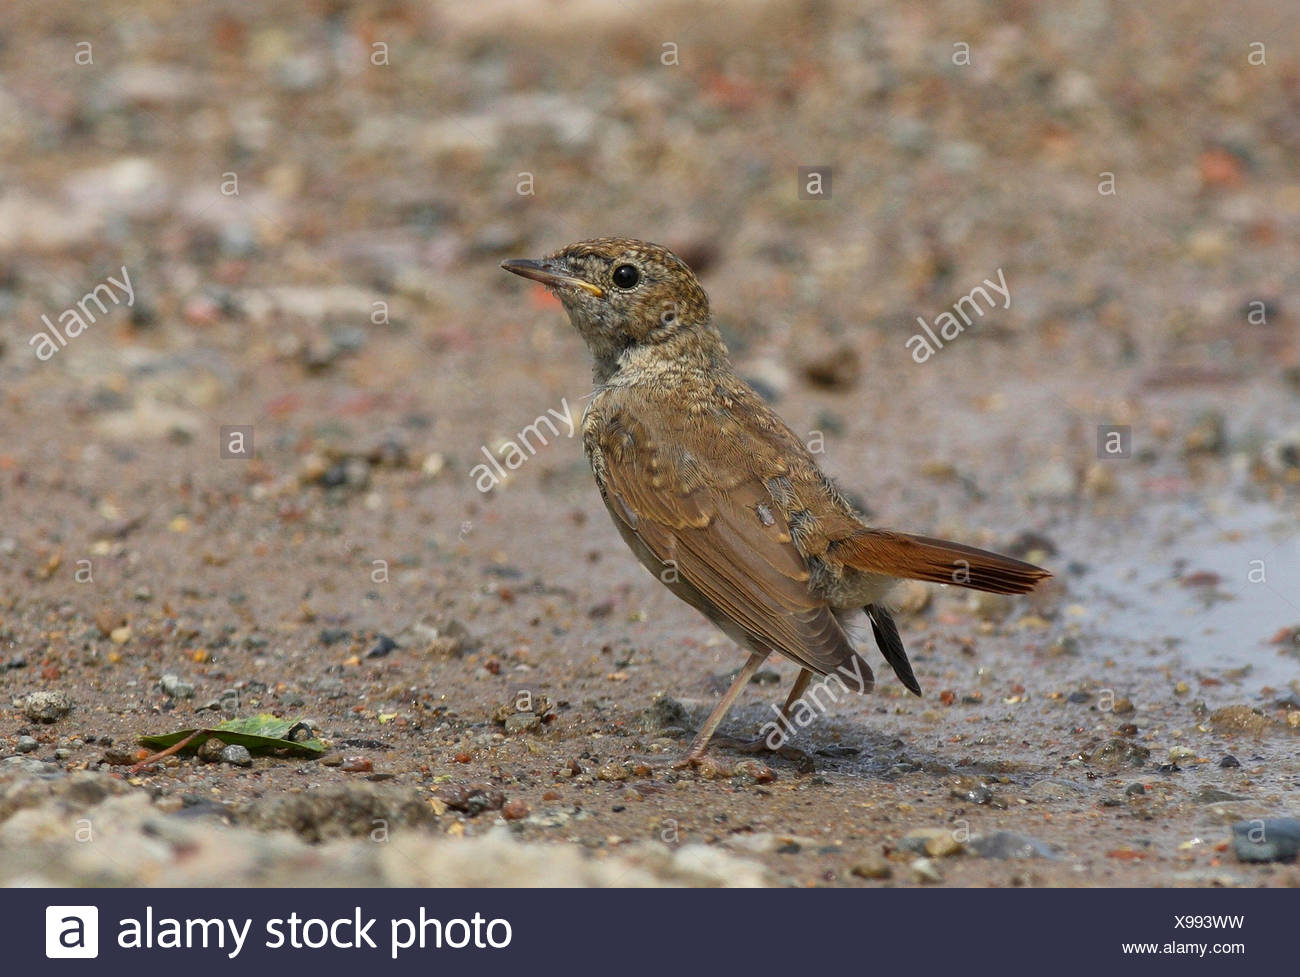 nightingale (Luscinia megarhynchos), juvenile at a puddle, Germany - Stock Image